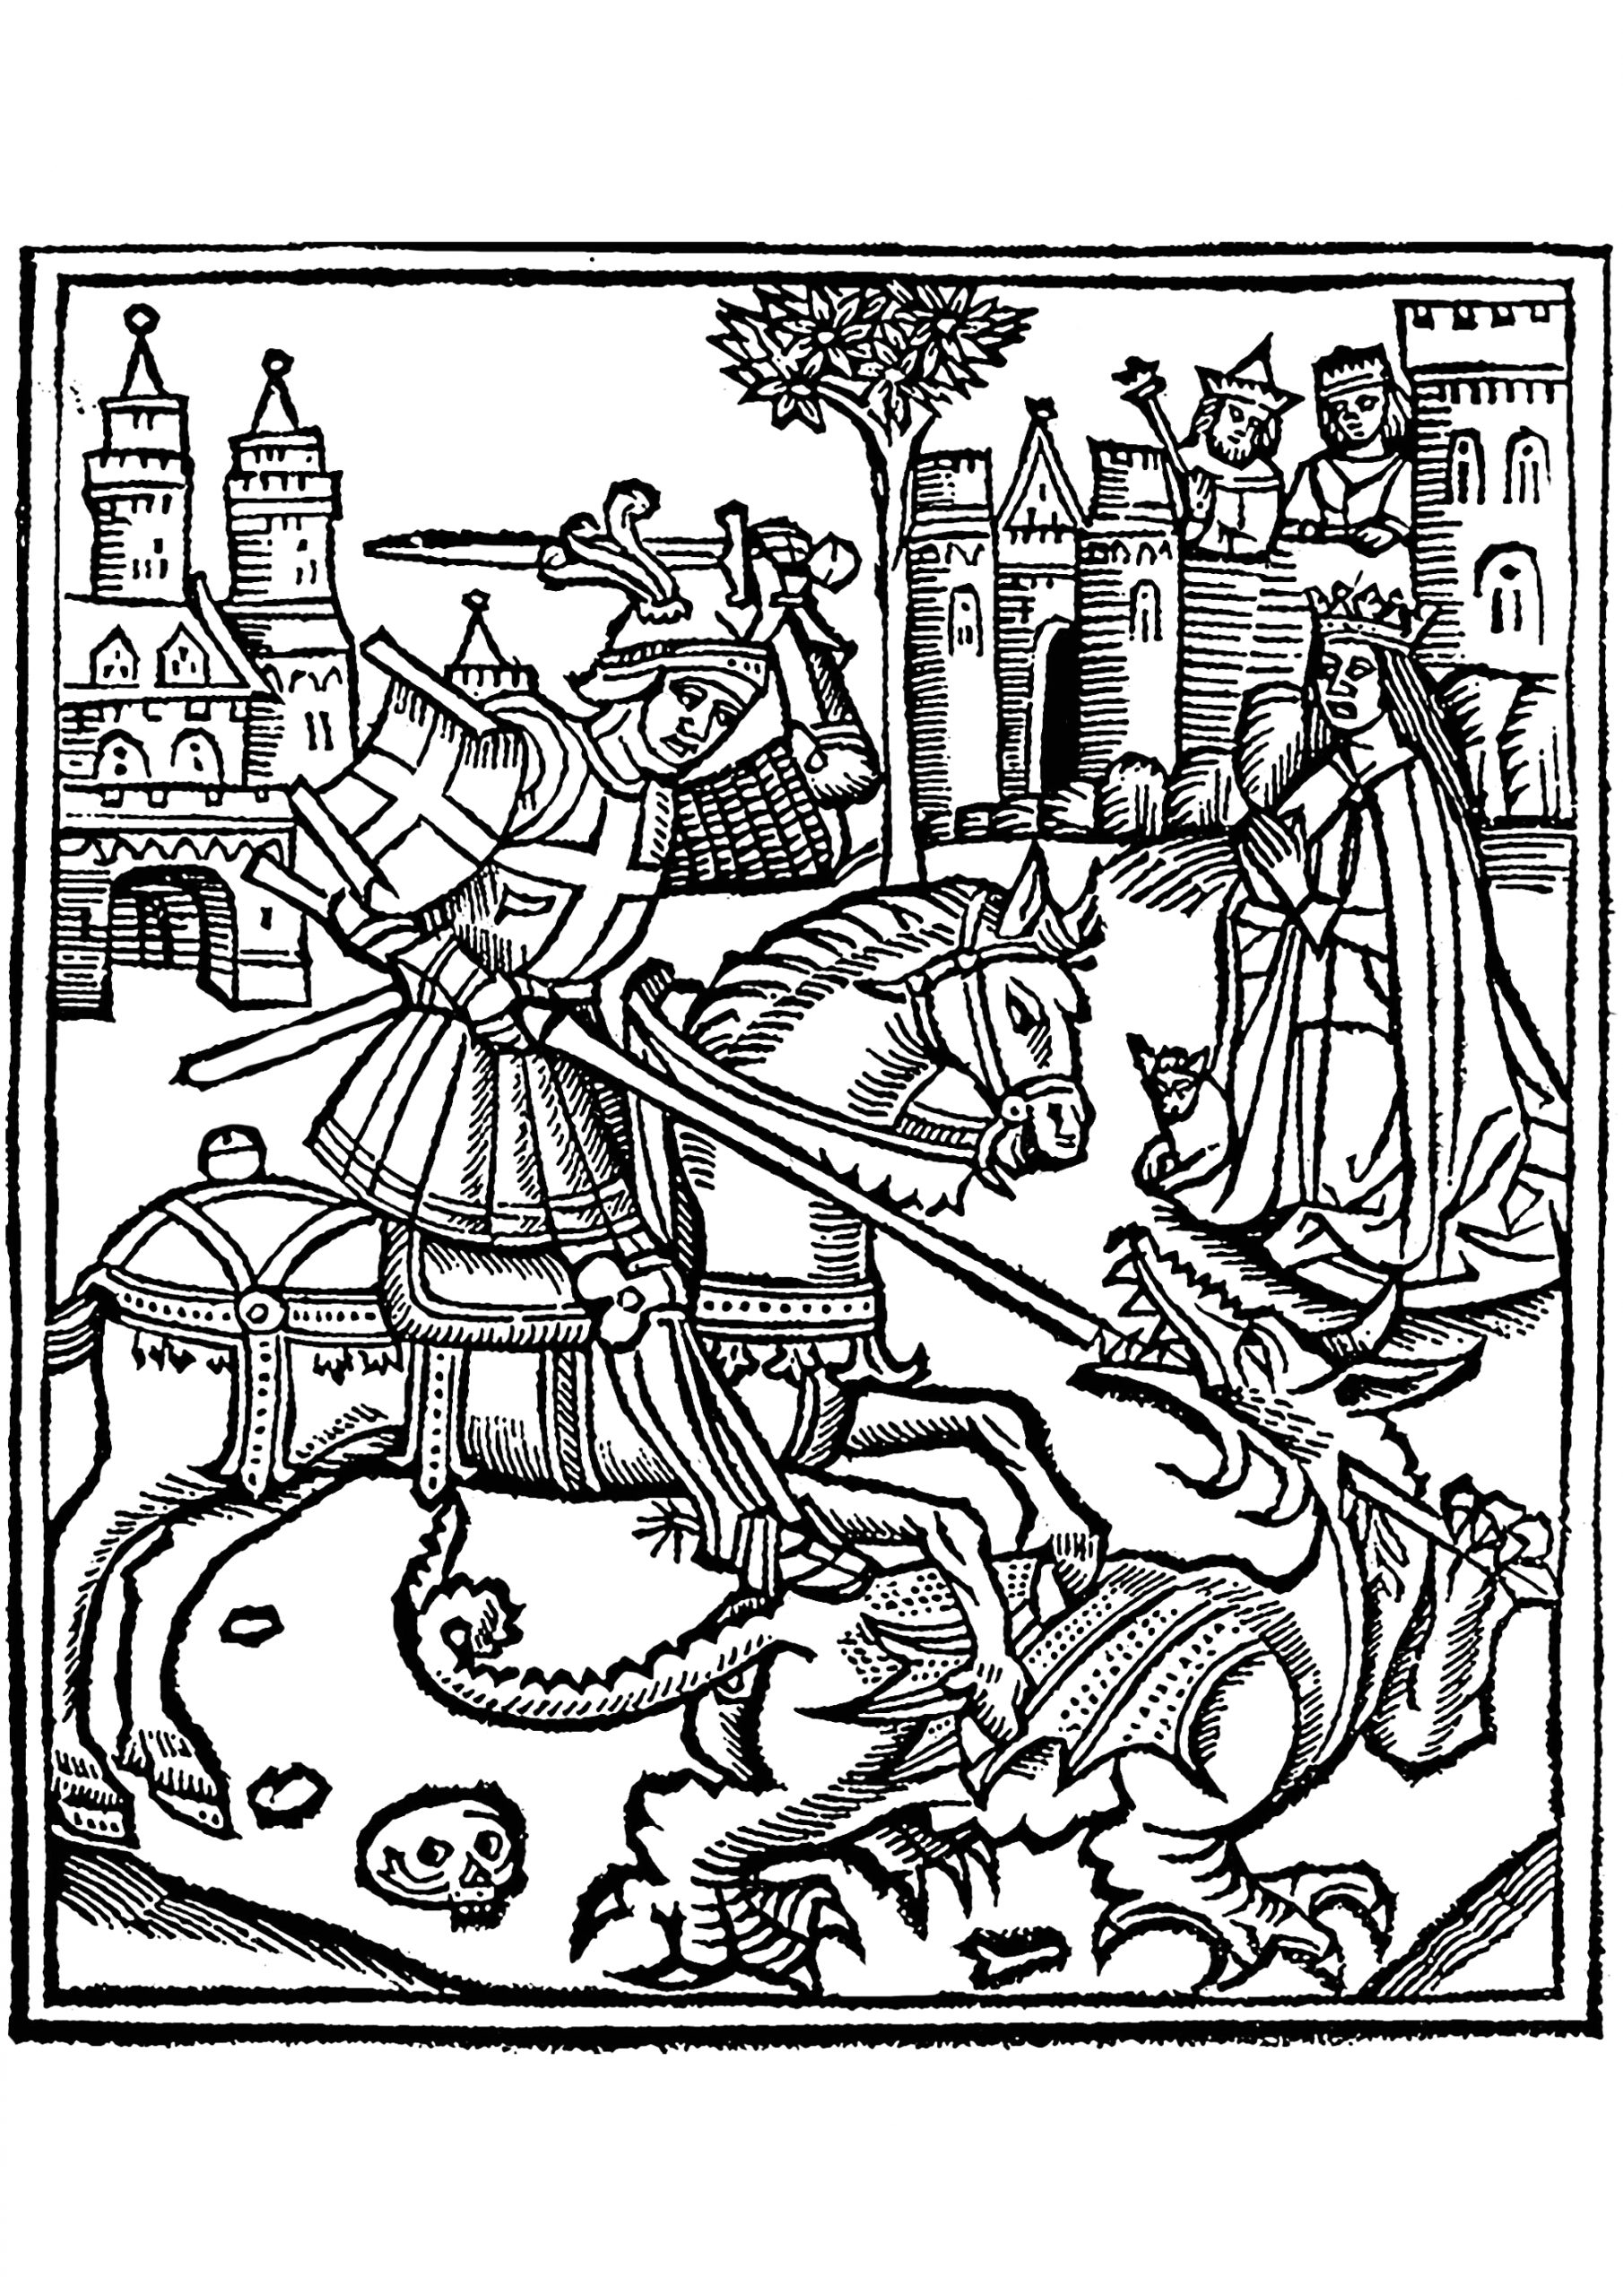 image=dragons coloring woodcut st george slaying the dragon 1